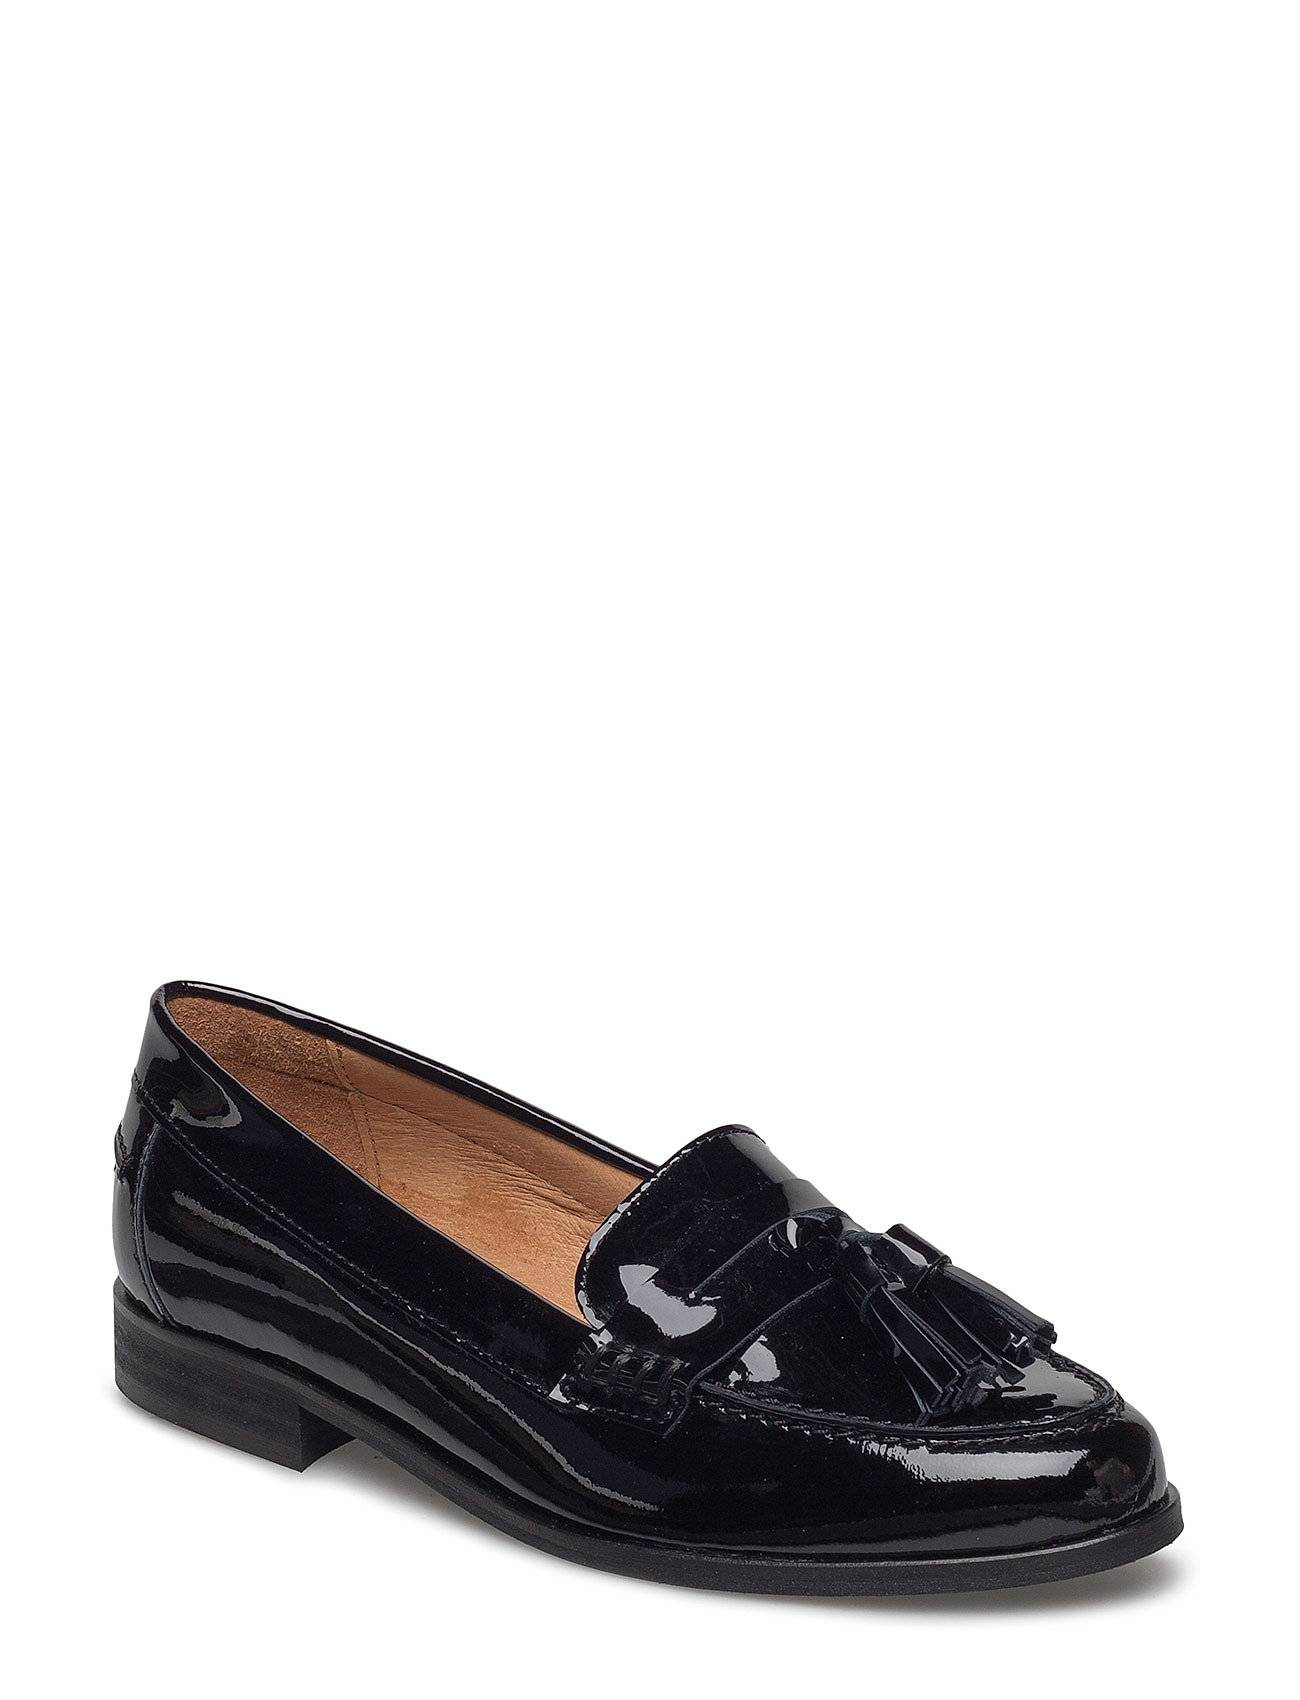 Morris Lady Lady Lac Loafer